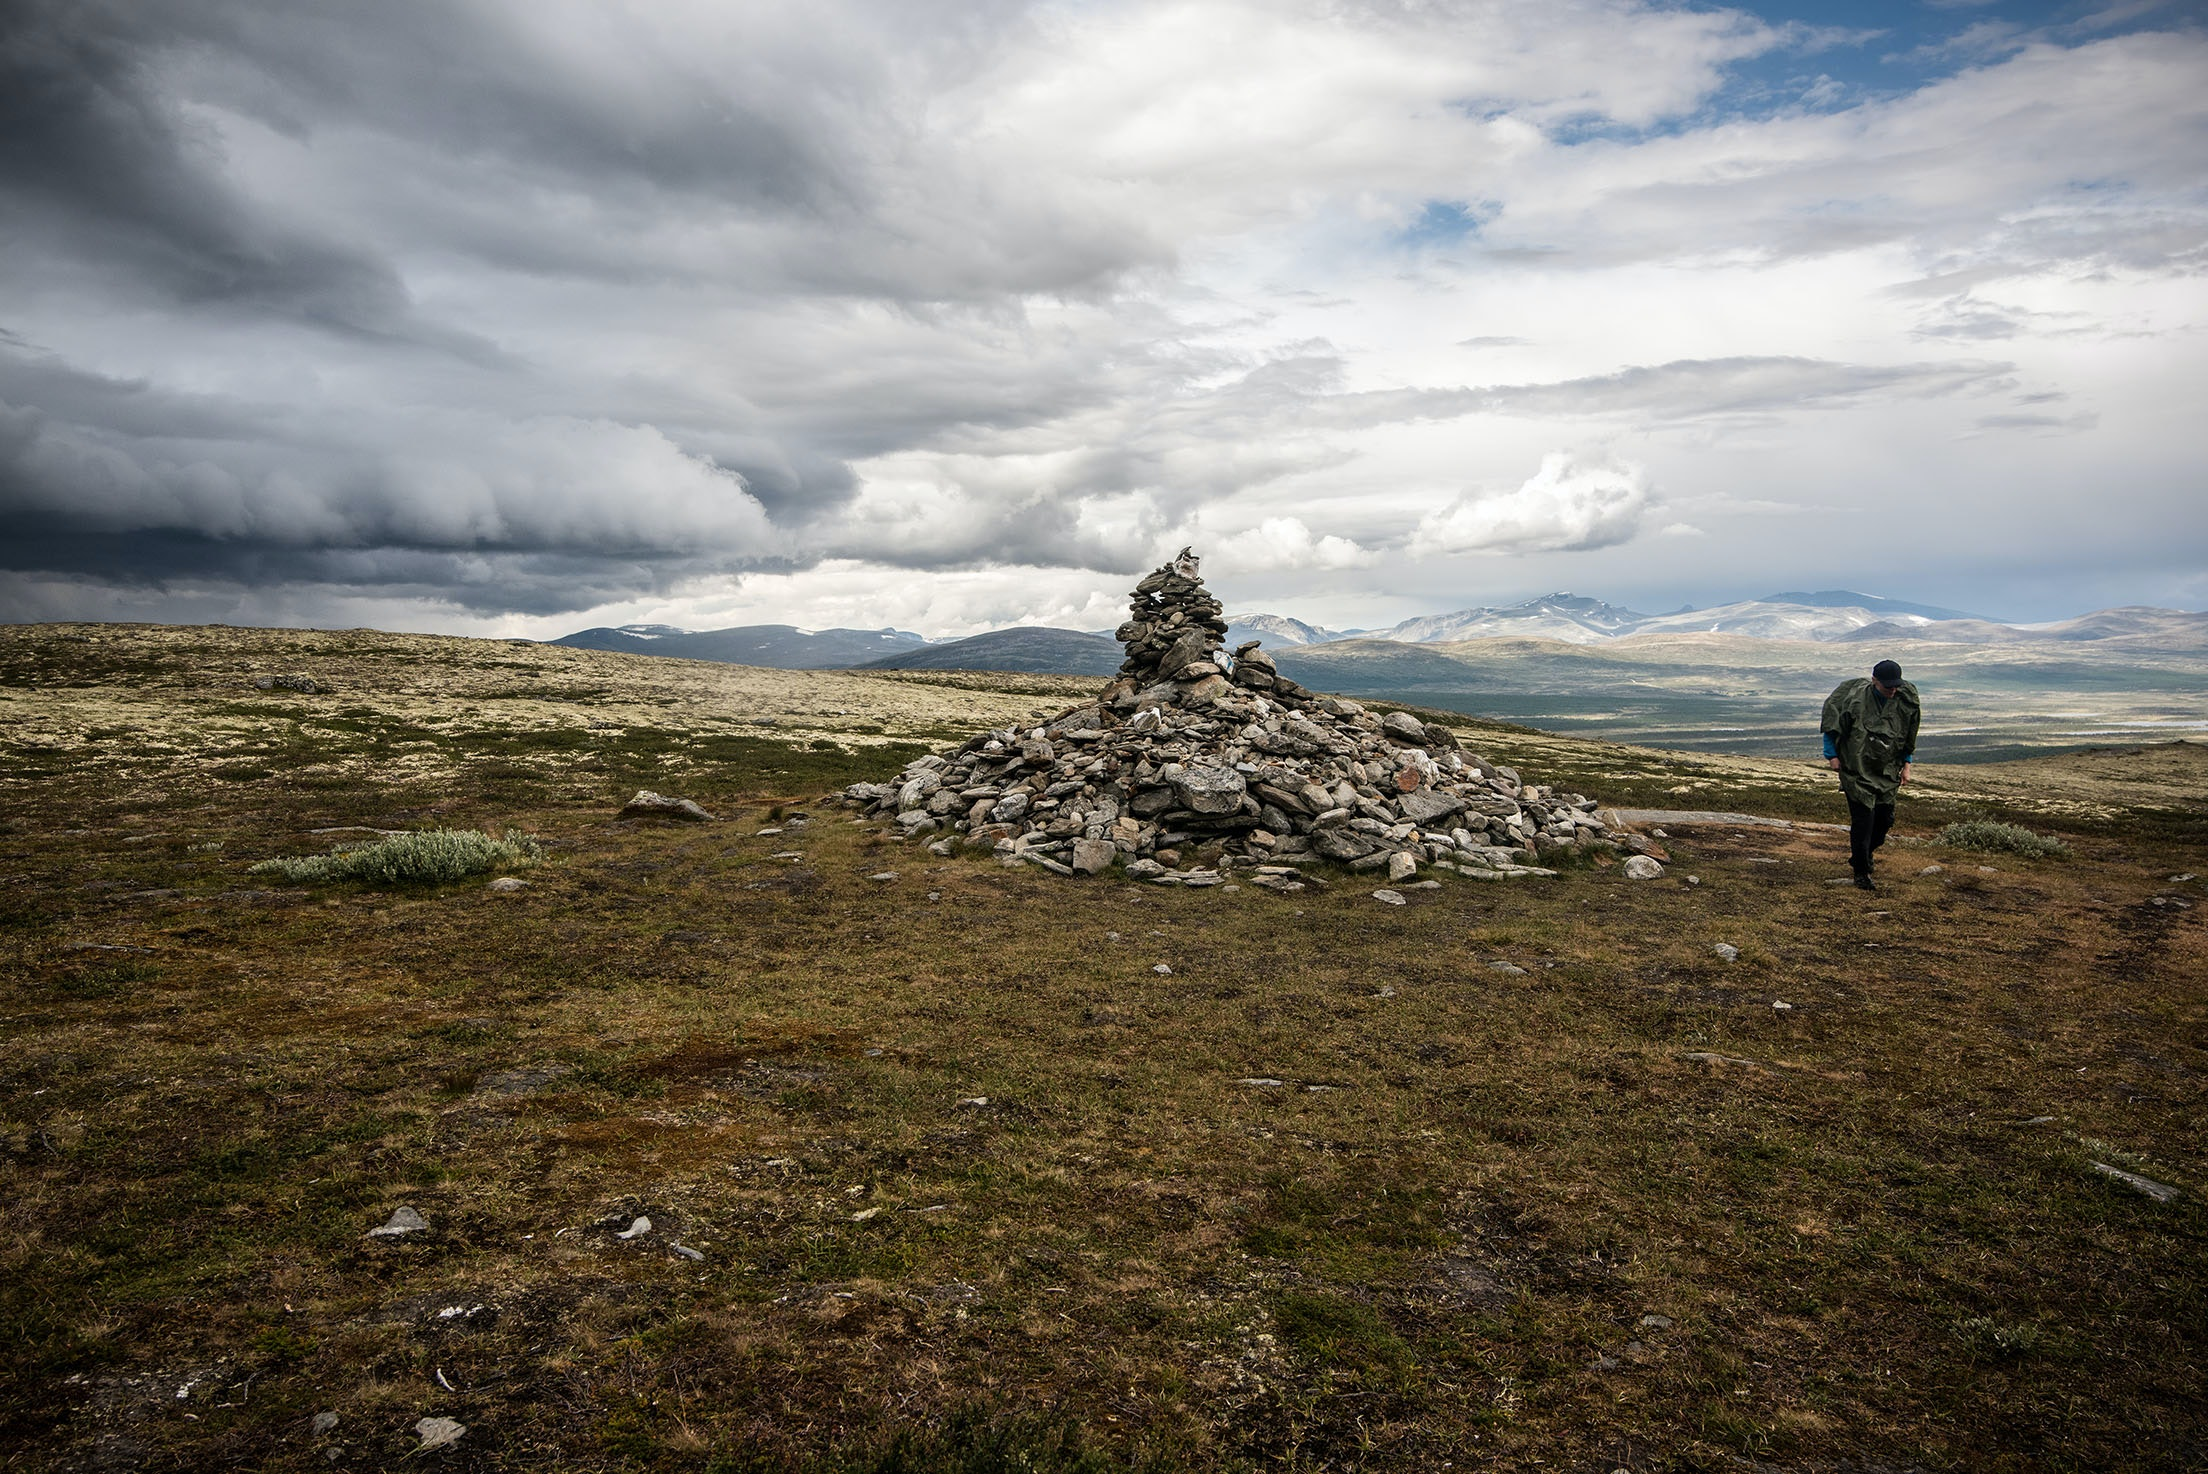 Set an intention of self-improvement at the 10-foot cairn in Dovrefjell National Park by adding a stone.